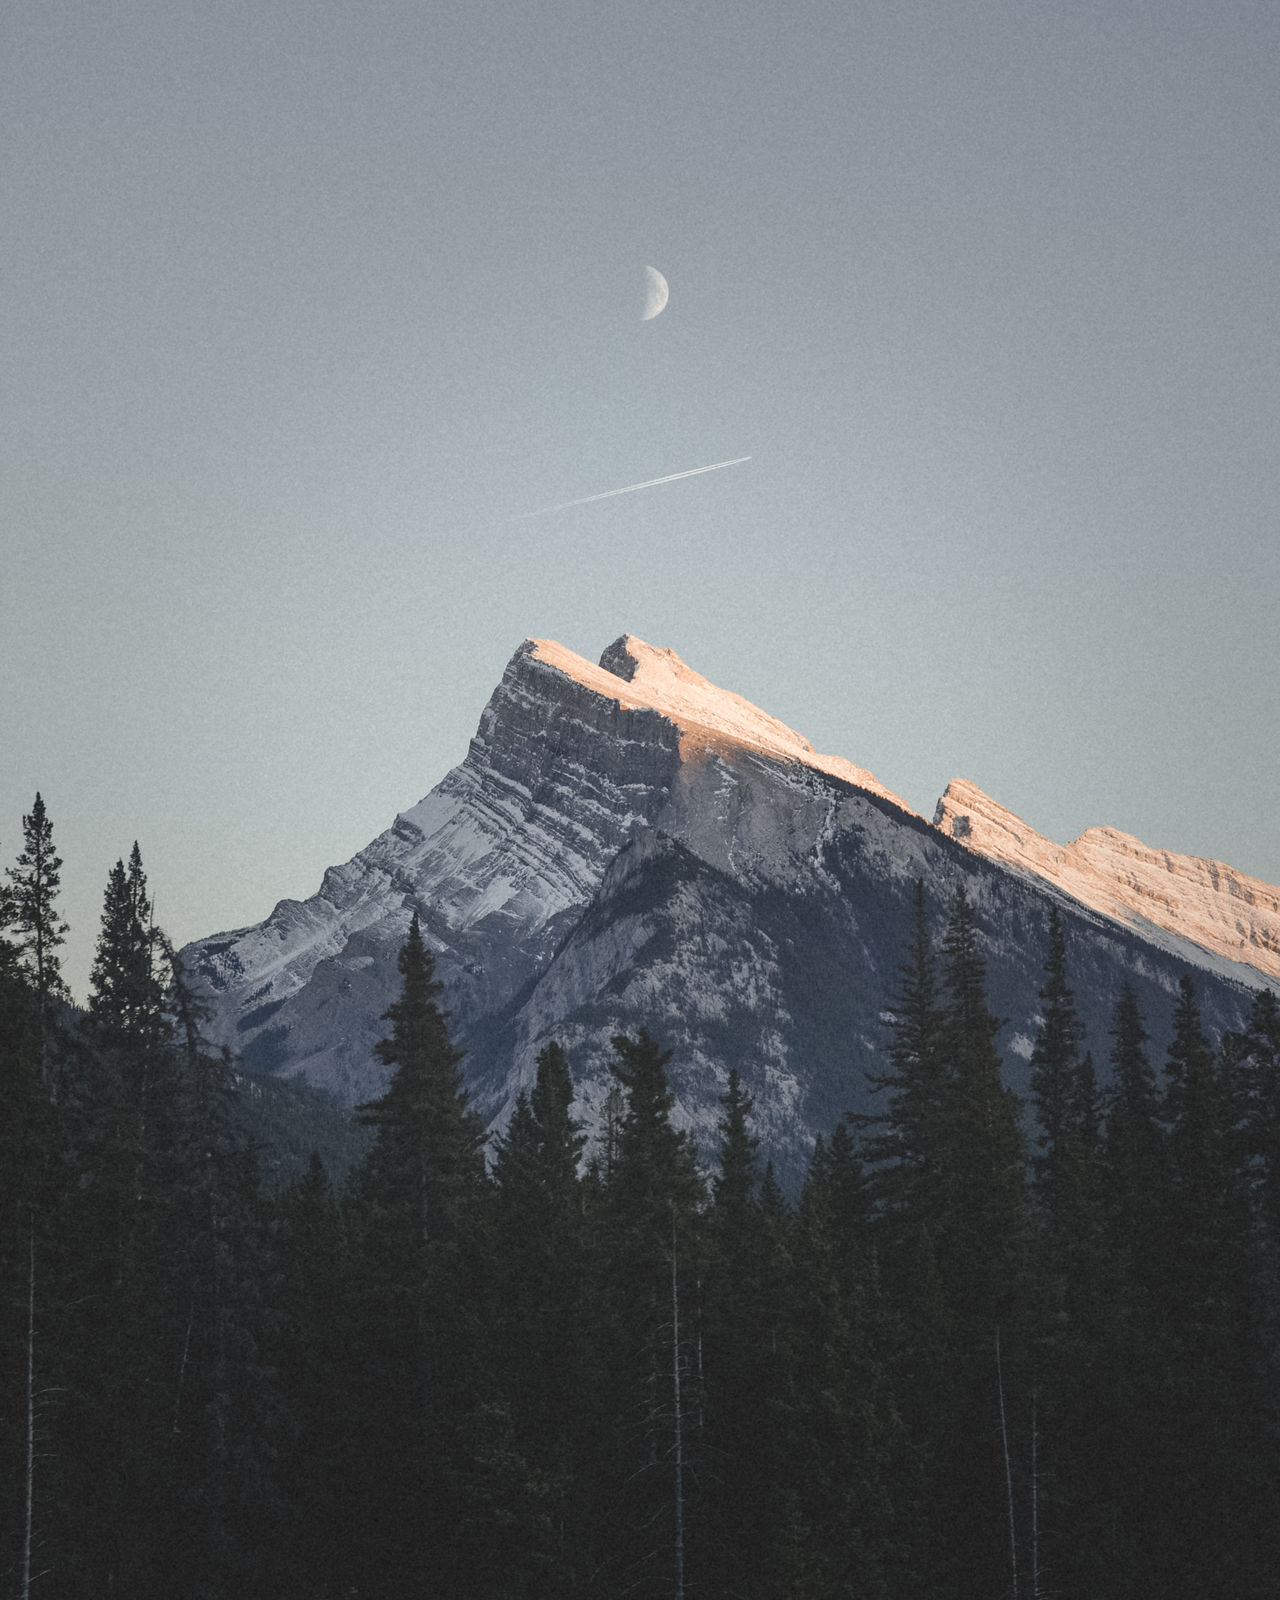 moon, mountain, nature, clear sky, tree